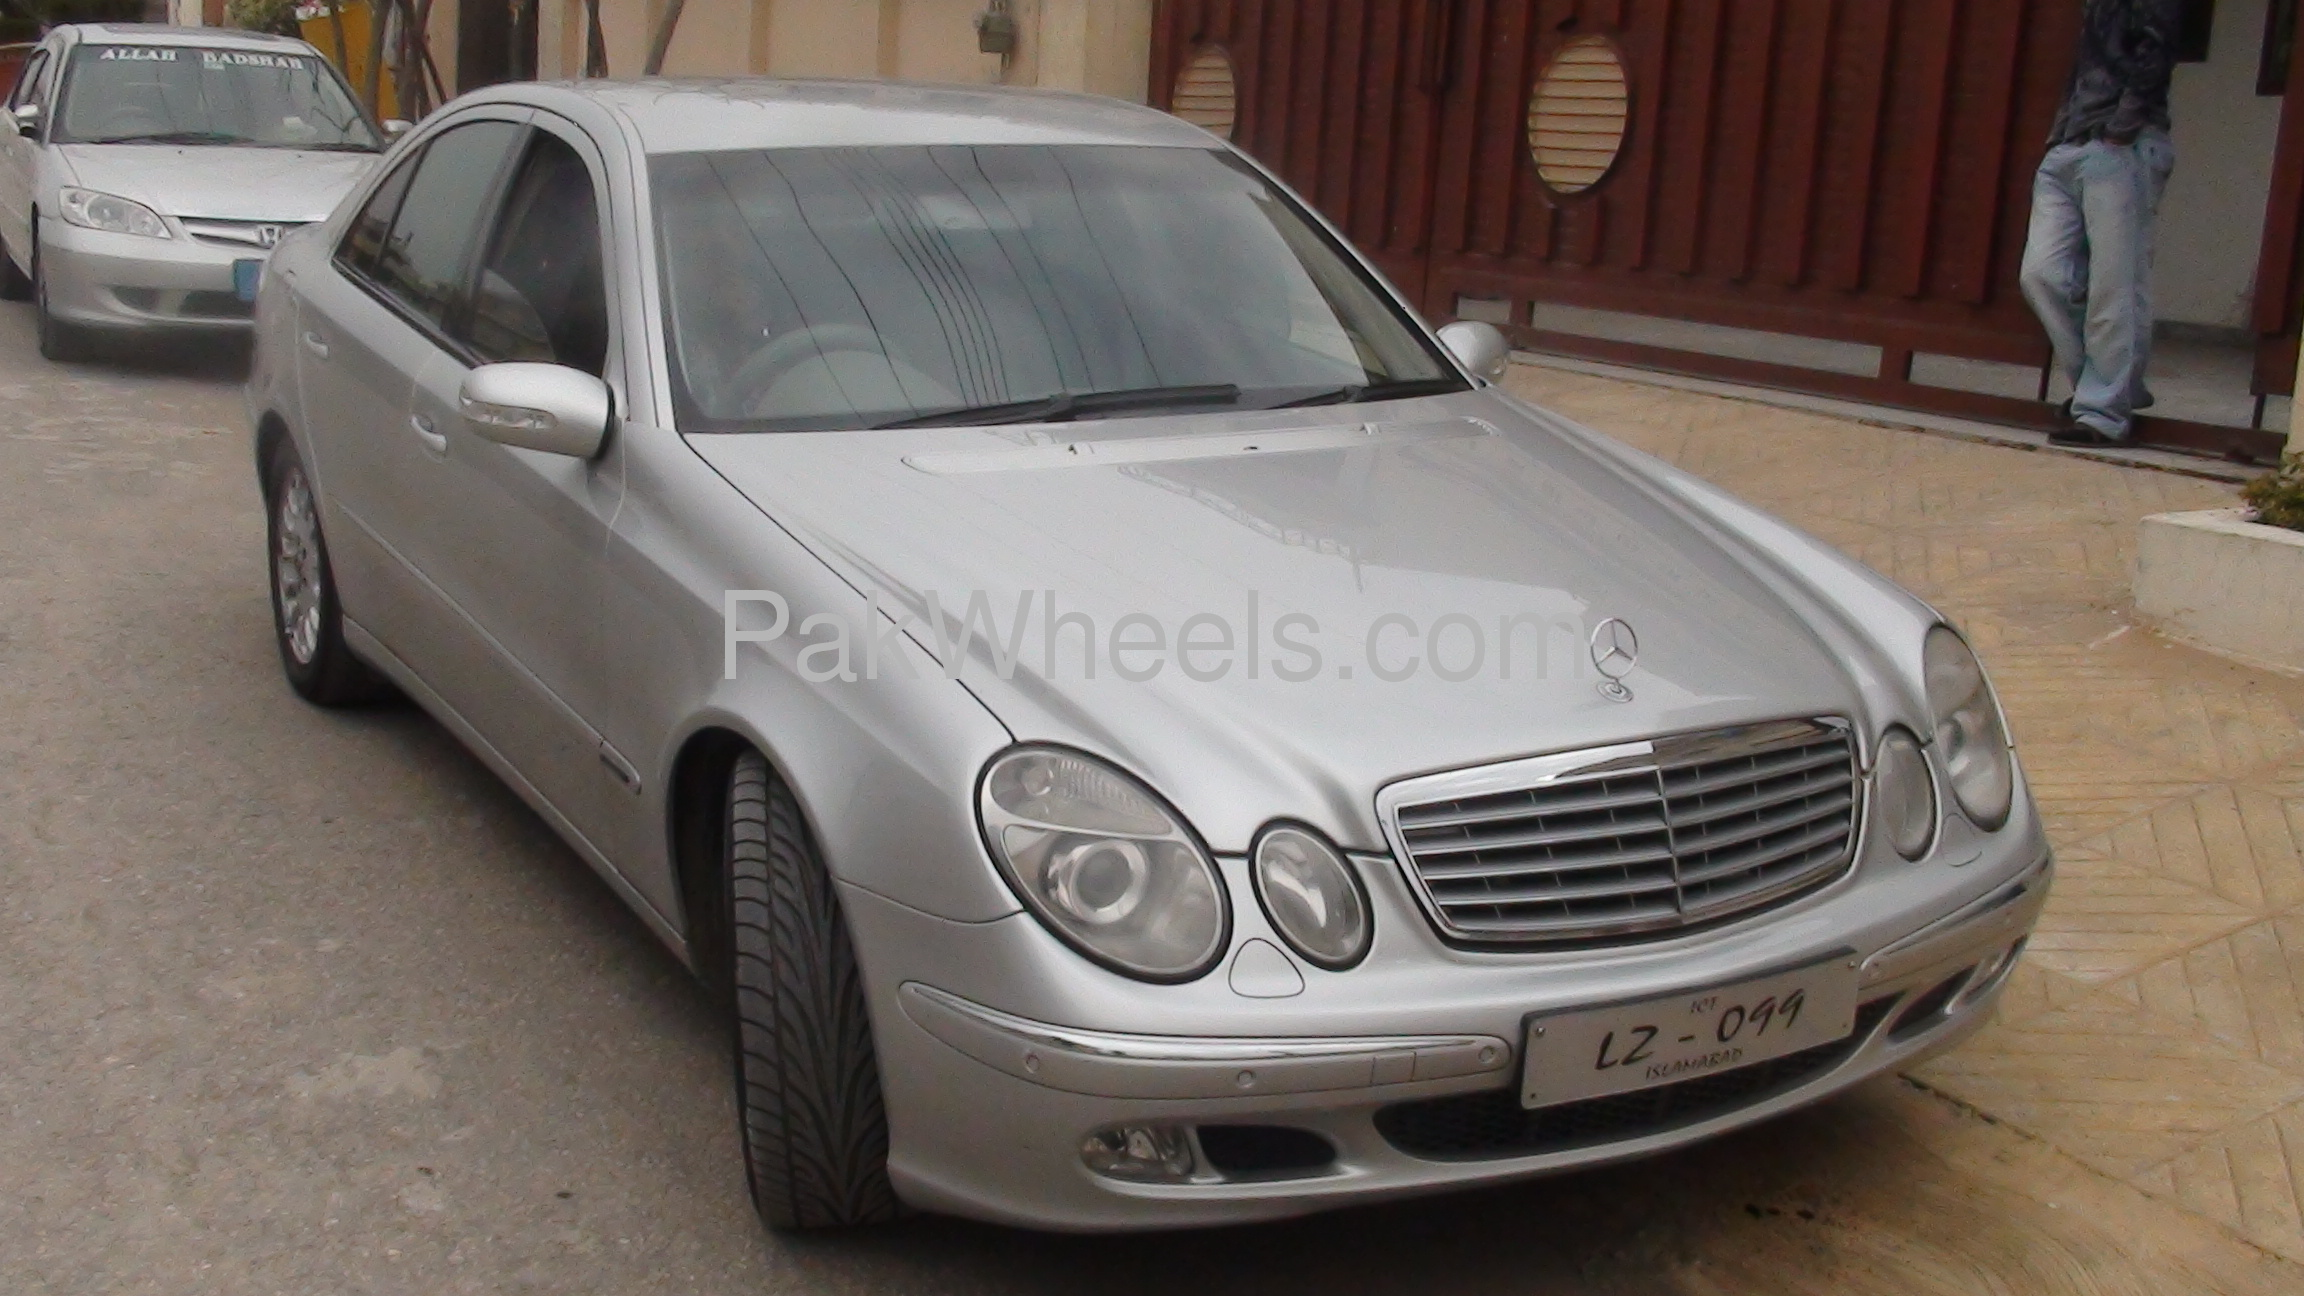 Mercedes benz e class e320 2005 for sale in islamabad for Mercedes benz 2005 e class